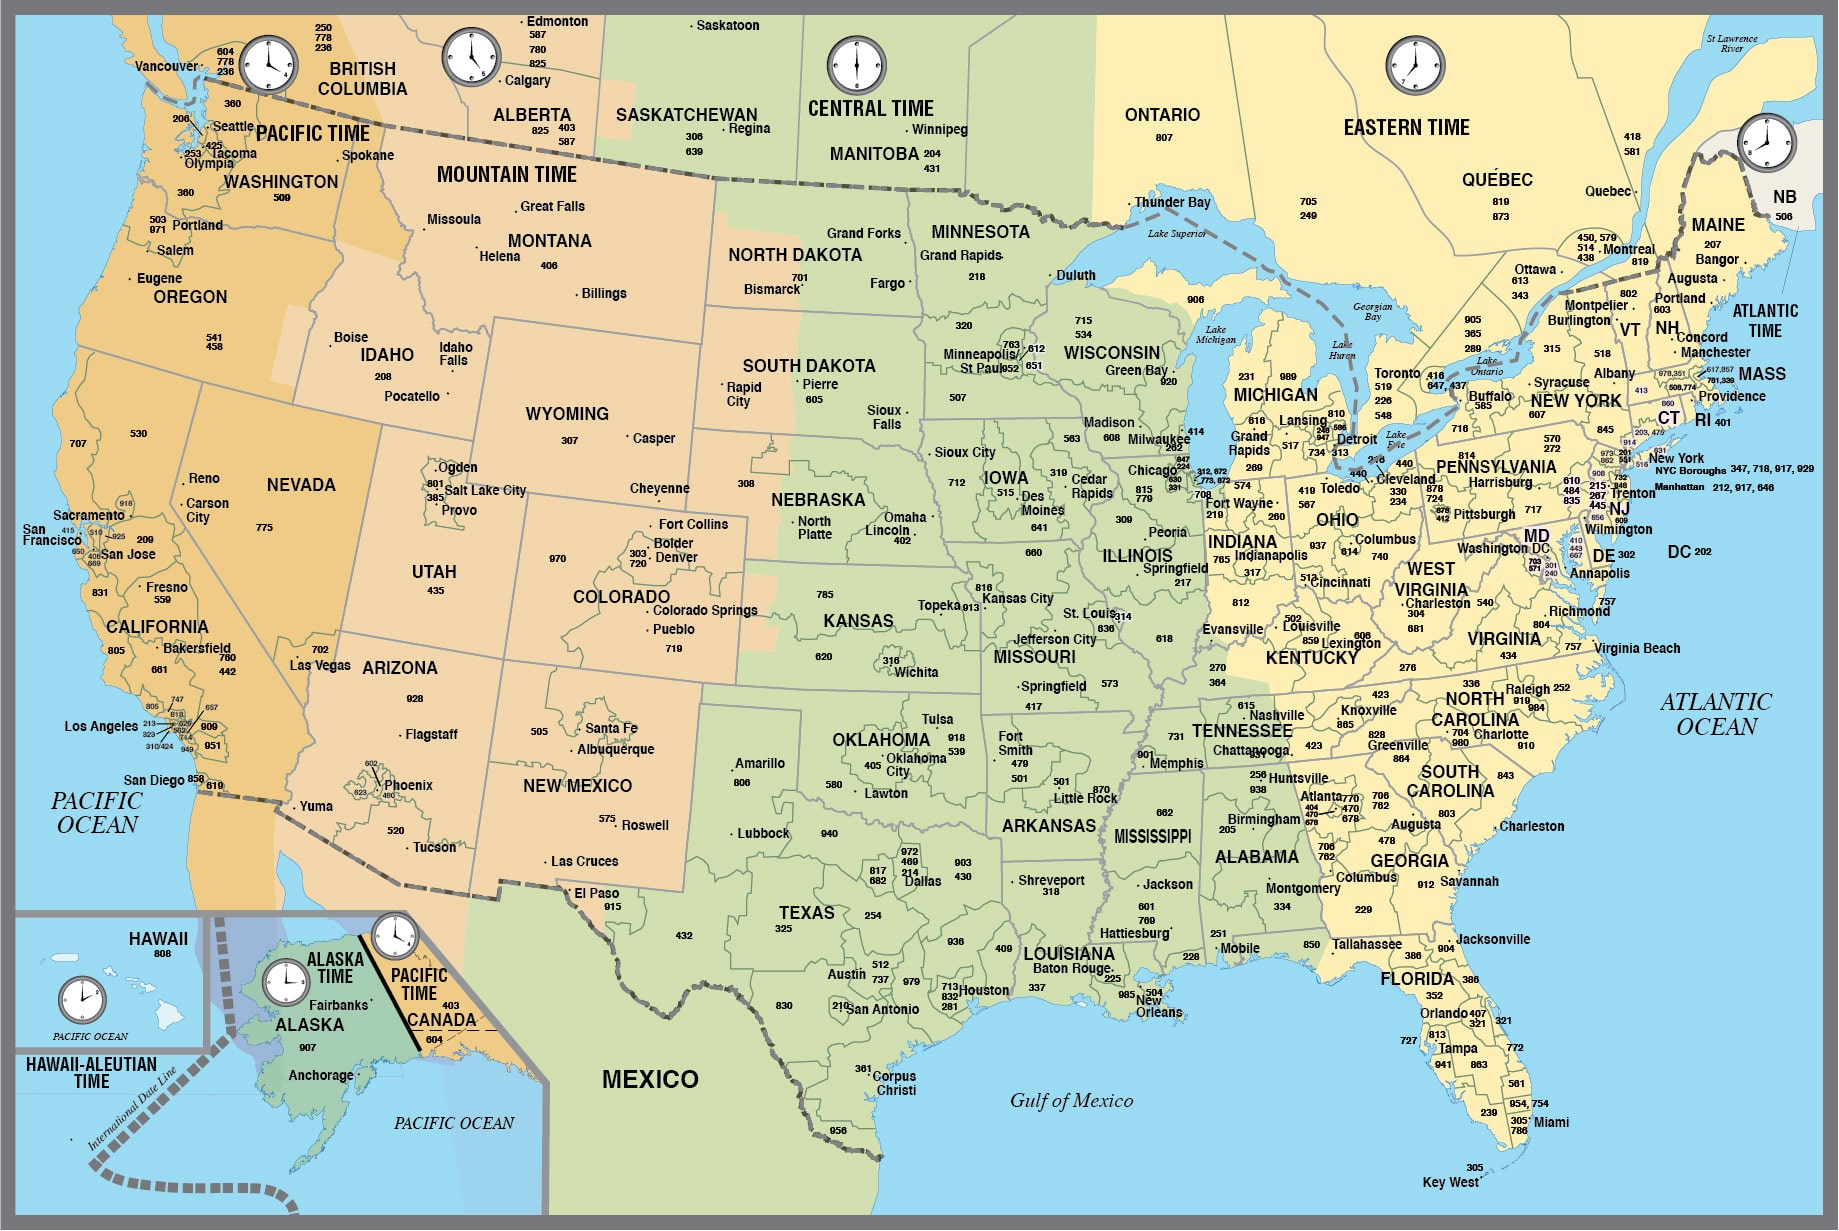 USA Canada Time Zone Map Timetimezones Arrogburo Map Of Time - Ohio state time zone